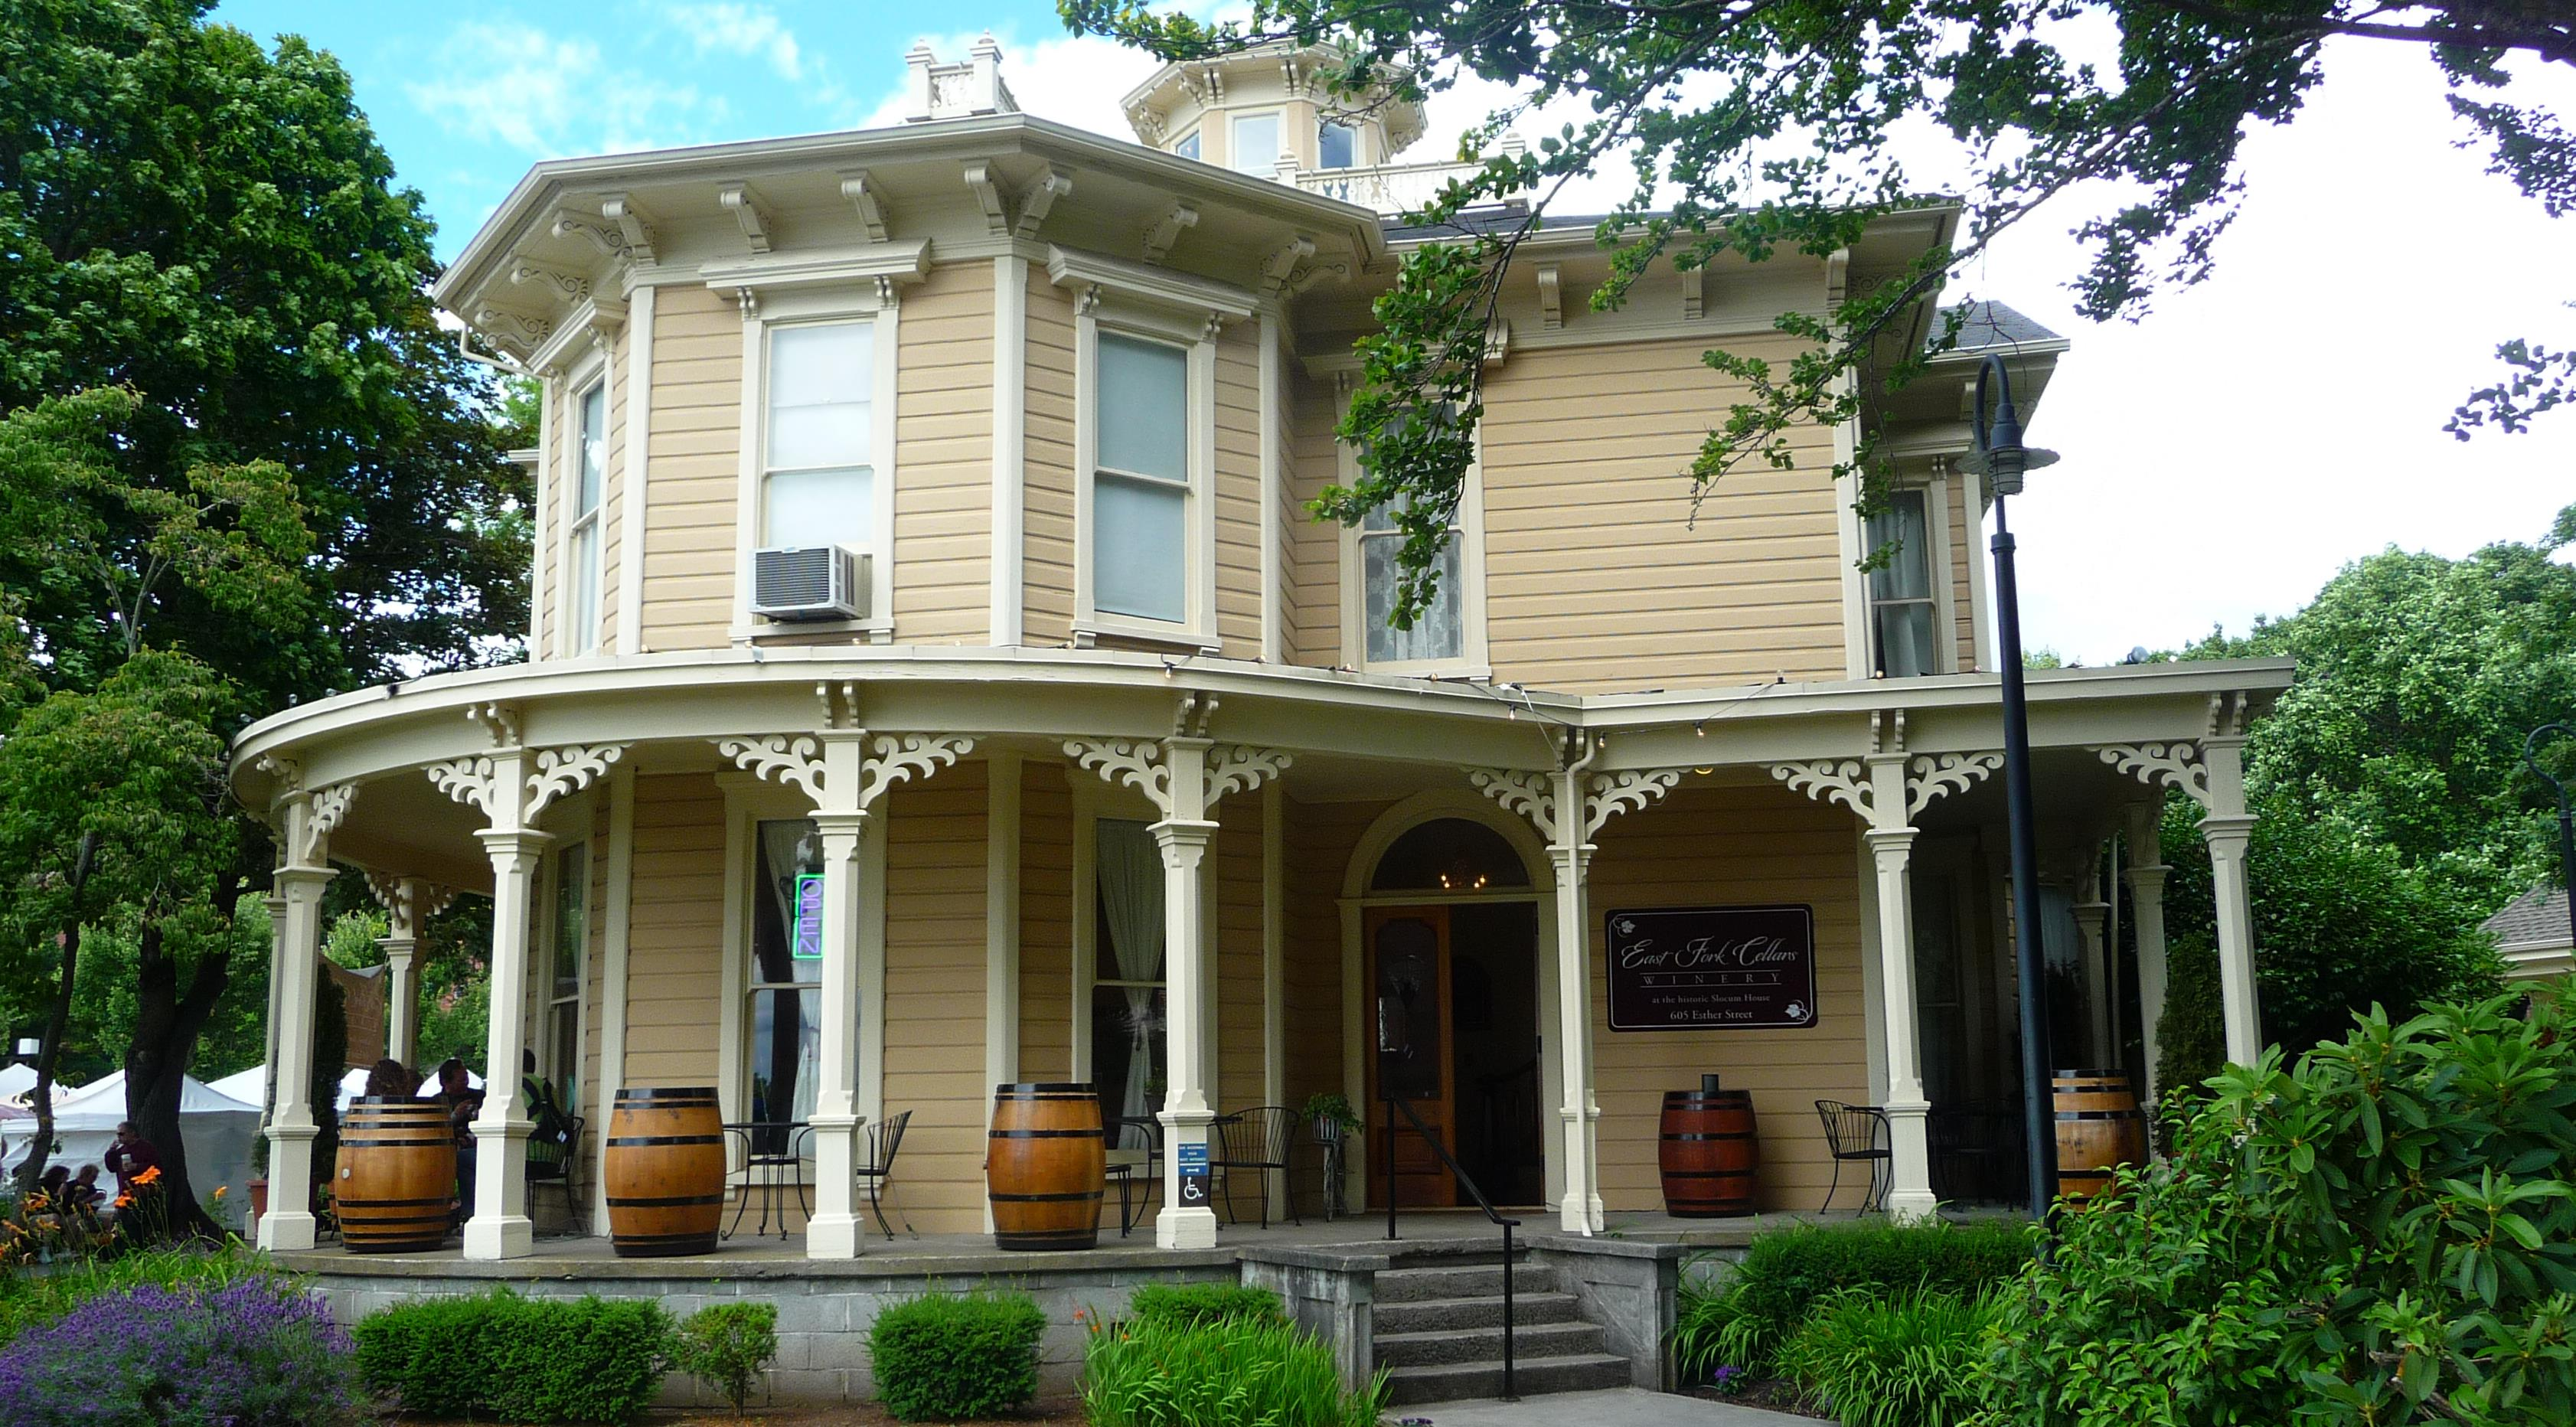 Inspirational East Fork Cellars Took Up Residence Inside Circa Historic Slocumhouse Nov Corks Forks Family Matters House Price Family Matters House 2018 August 2013 Weekend Wrap Up curbed Family Matters House